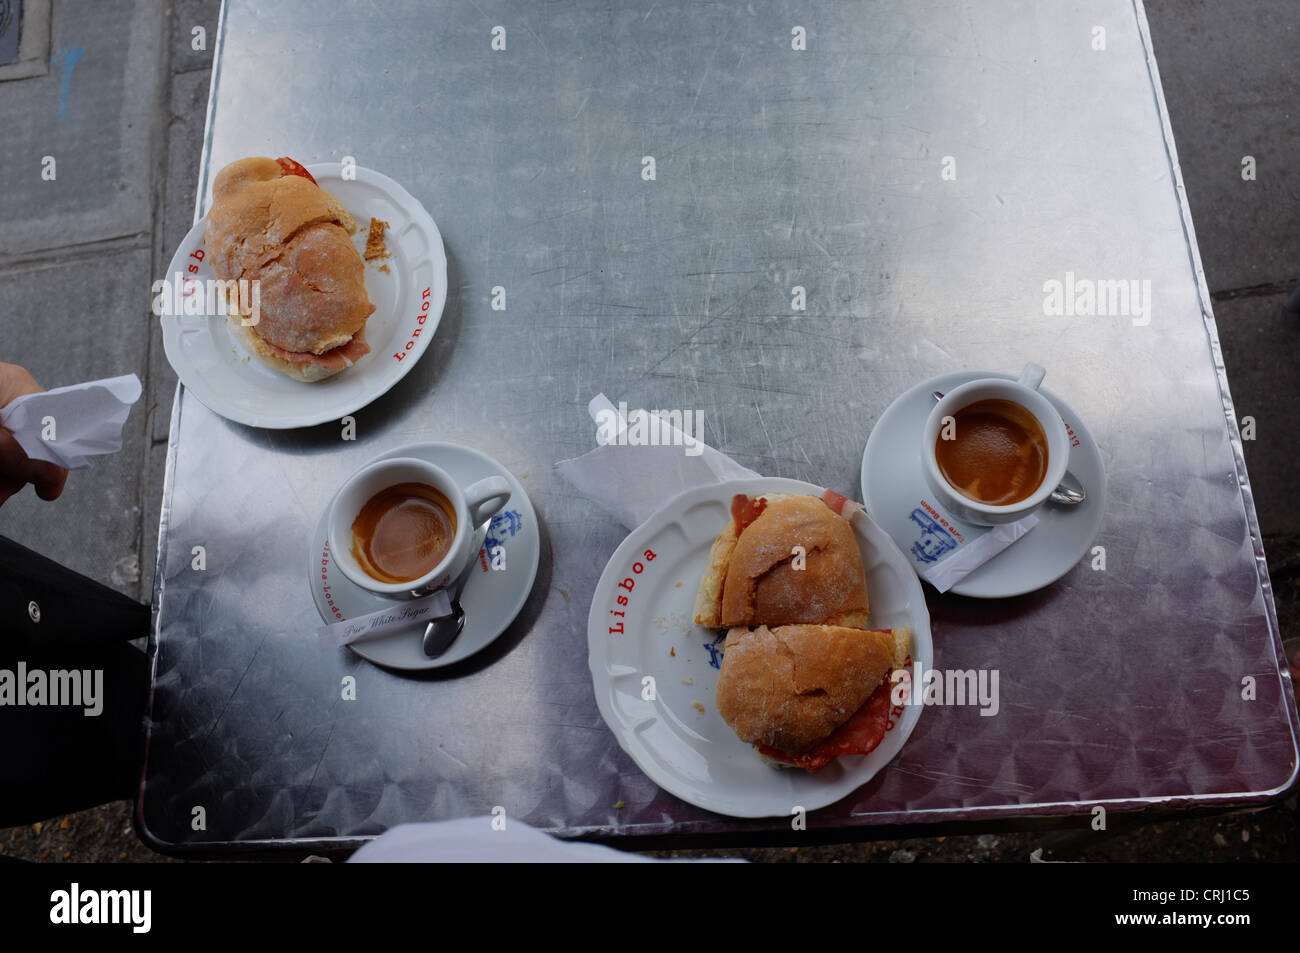 An outside Portuguese breakfast at the Lisboa Patisserie in Golbourne Road, North Kensington, London - Stock Image